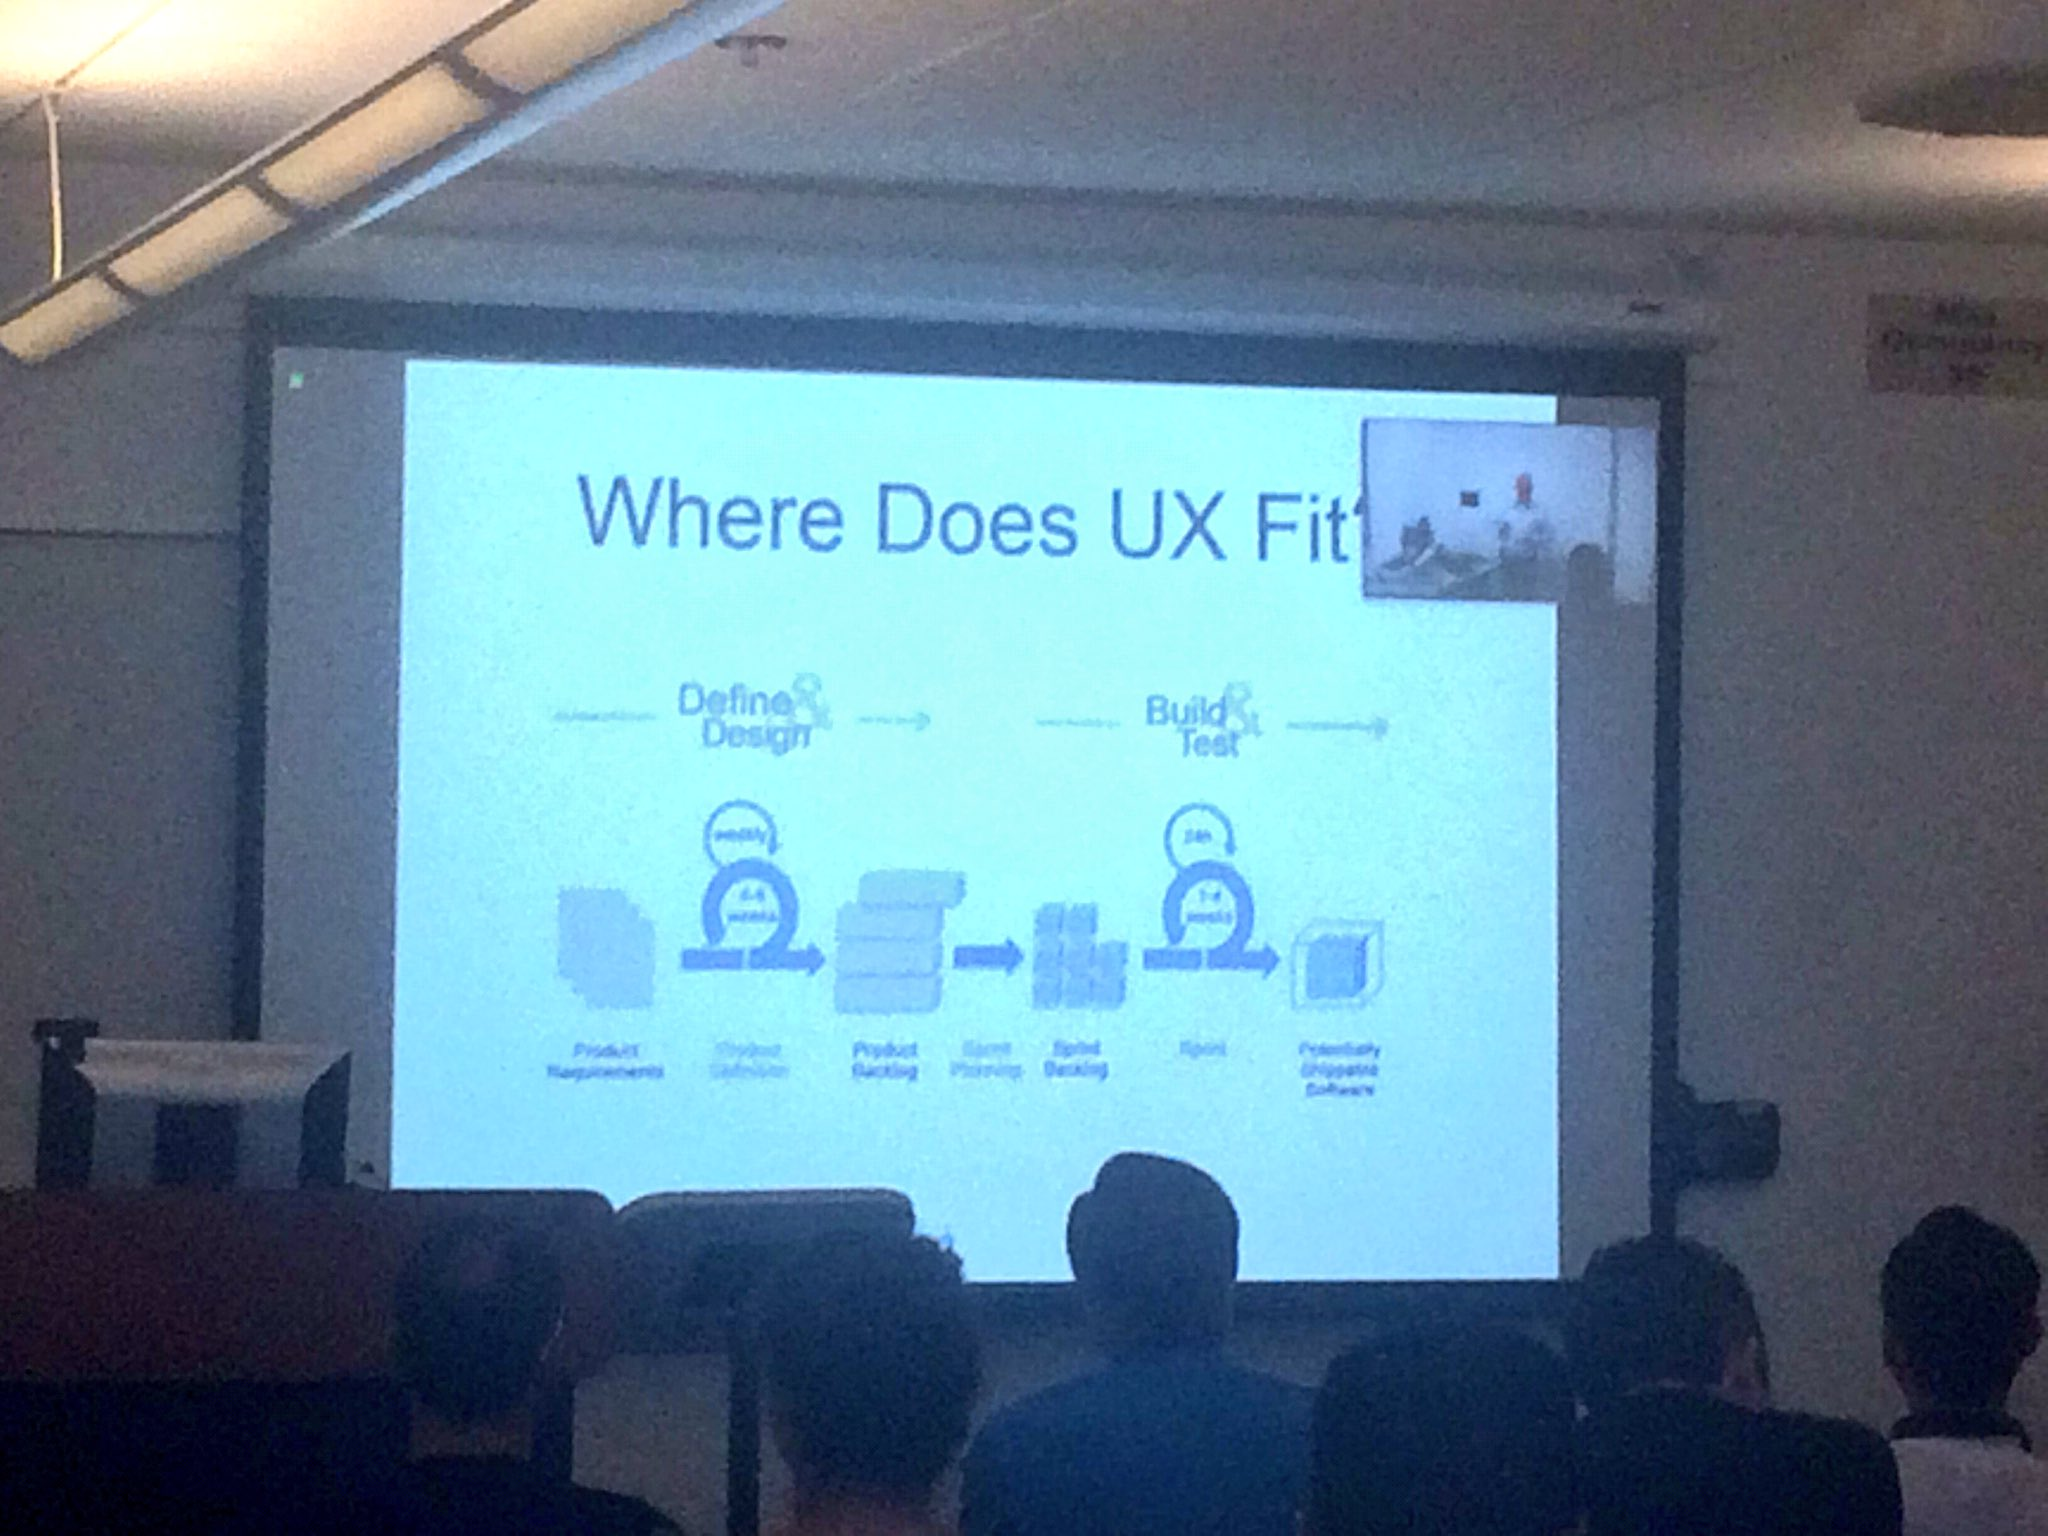 So where does UX fit in Agile?  No clear time for design! @Sean_Van_Tyne #SoCalUXCamp https://t.co/9VlcB5yQFN